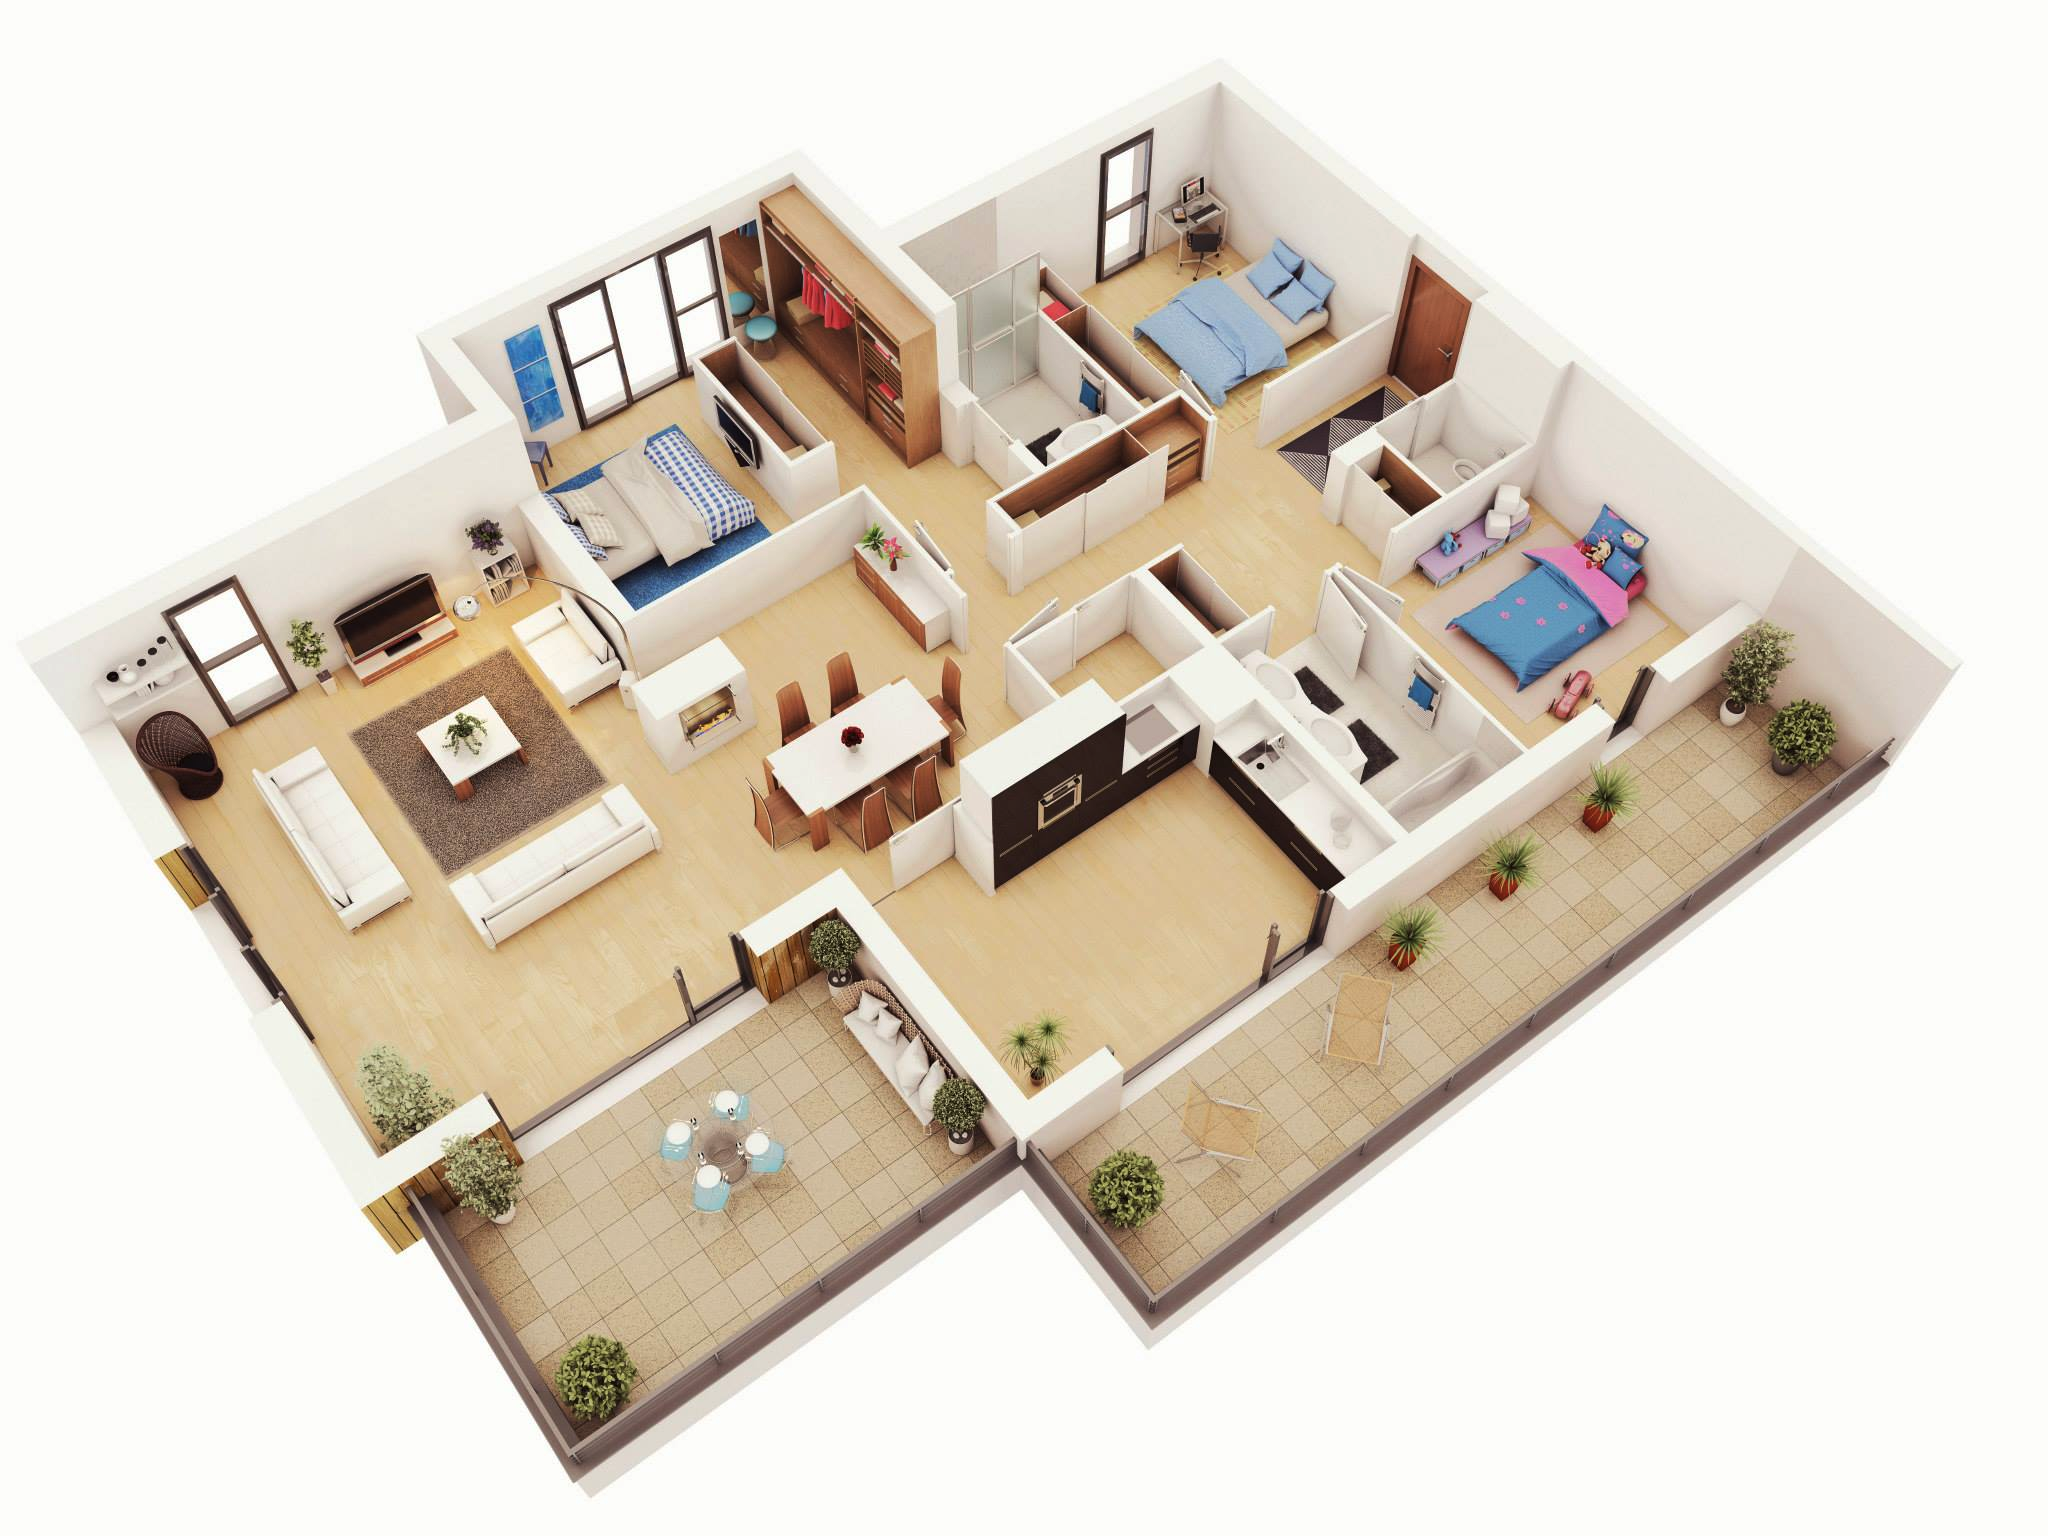 25 more 3 bedroom 3d floor plans architecture design Home design architecture 3d